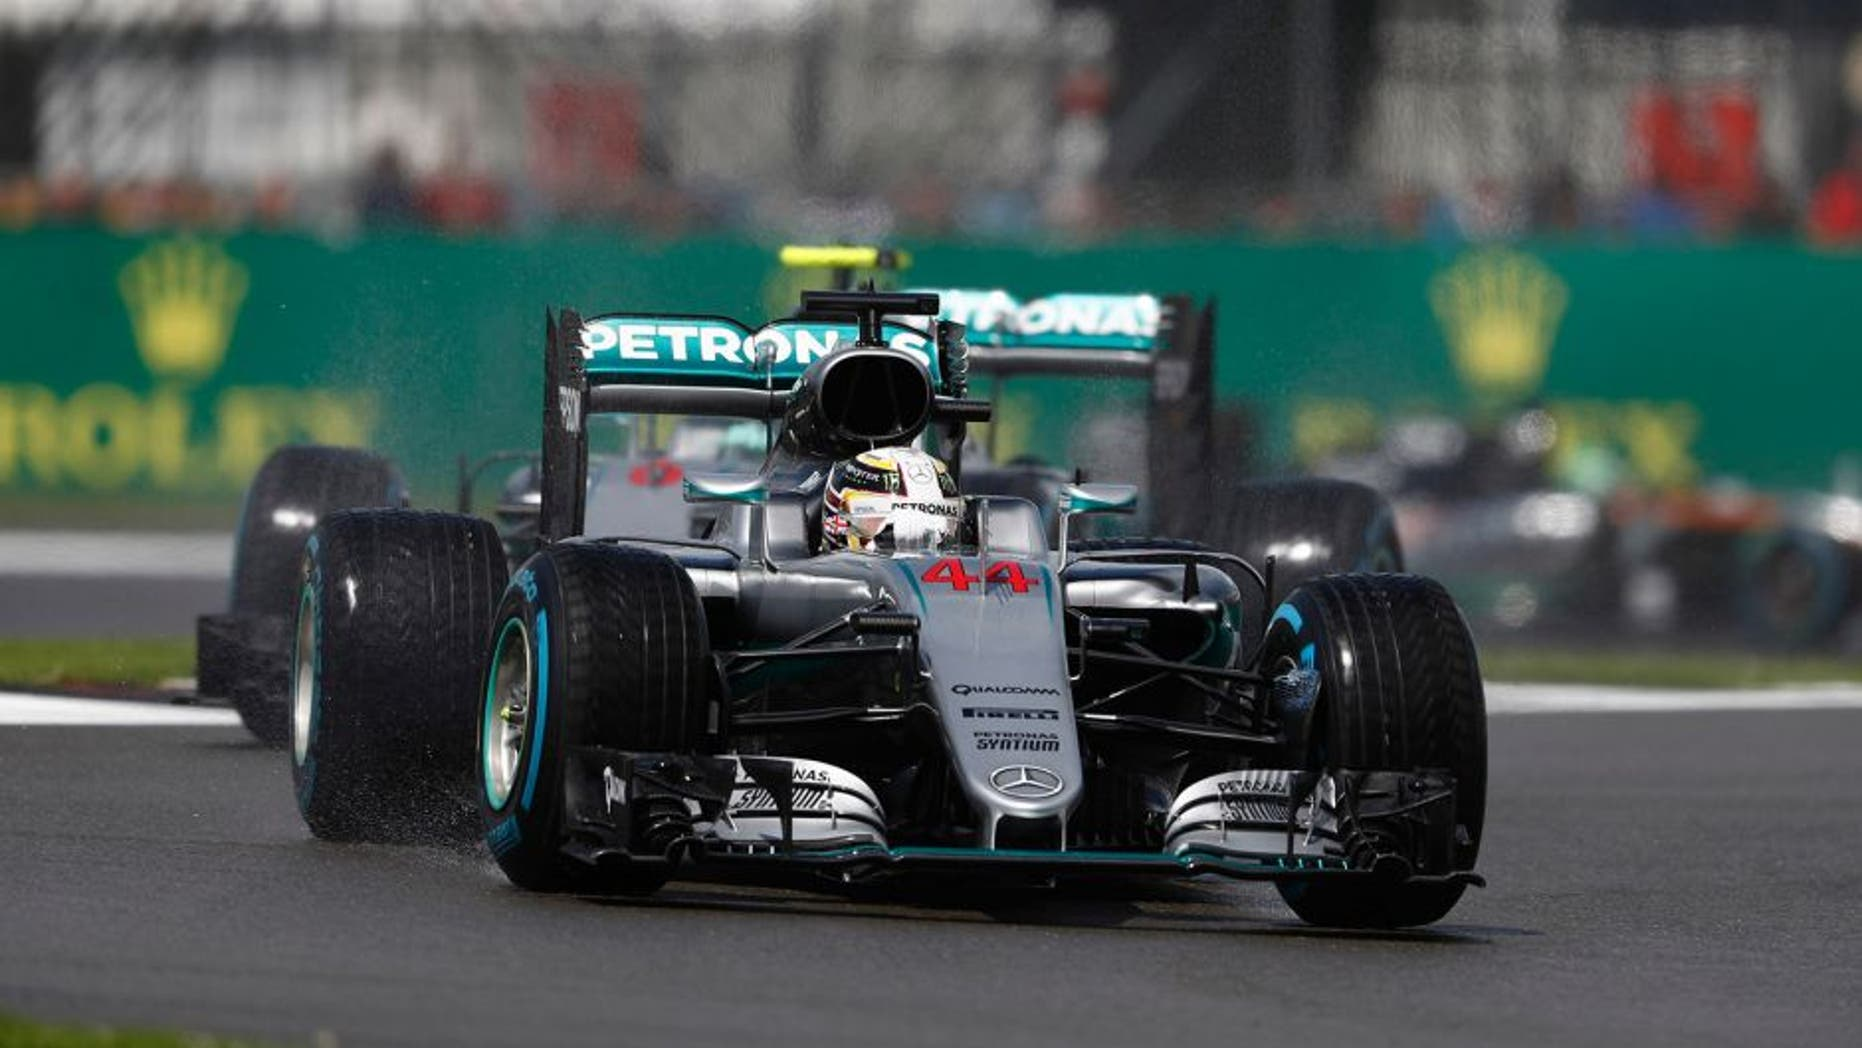 Silverstone, Northamptonshire, UK Sunday 10 July 2016. Lewis Hamilton, Mercedes F1 W07 Hybrid, leads Nico Rosberg, Mercedes F1 W07 Hybrid. World Copyright: Glenn Dunbar/LAT Photographic ref: Digital Image _V2I0159